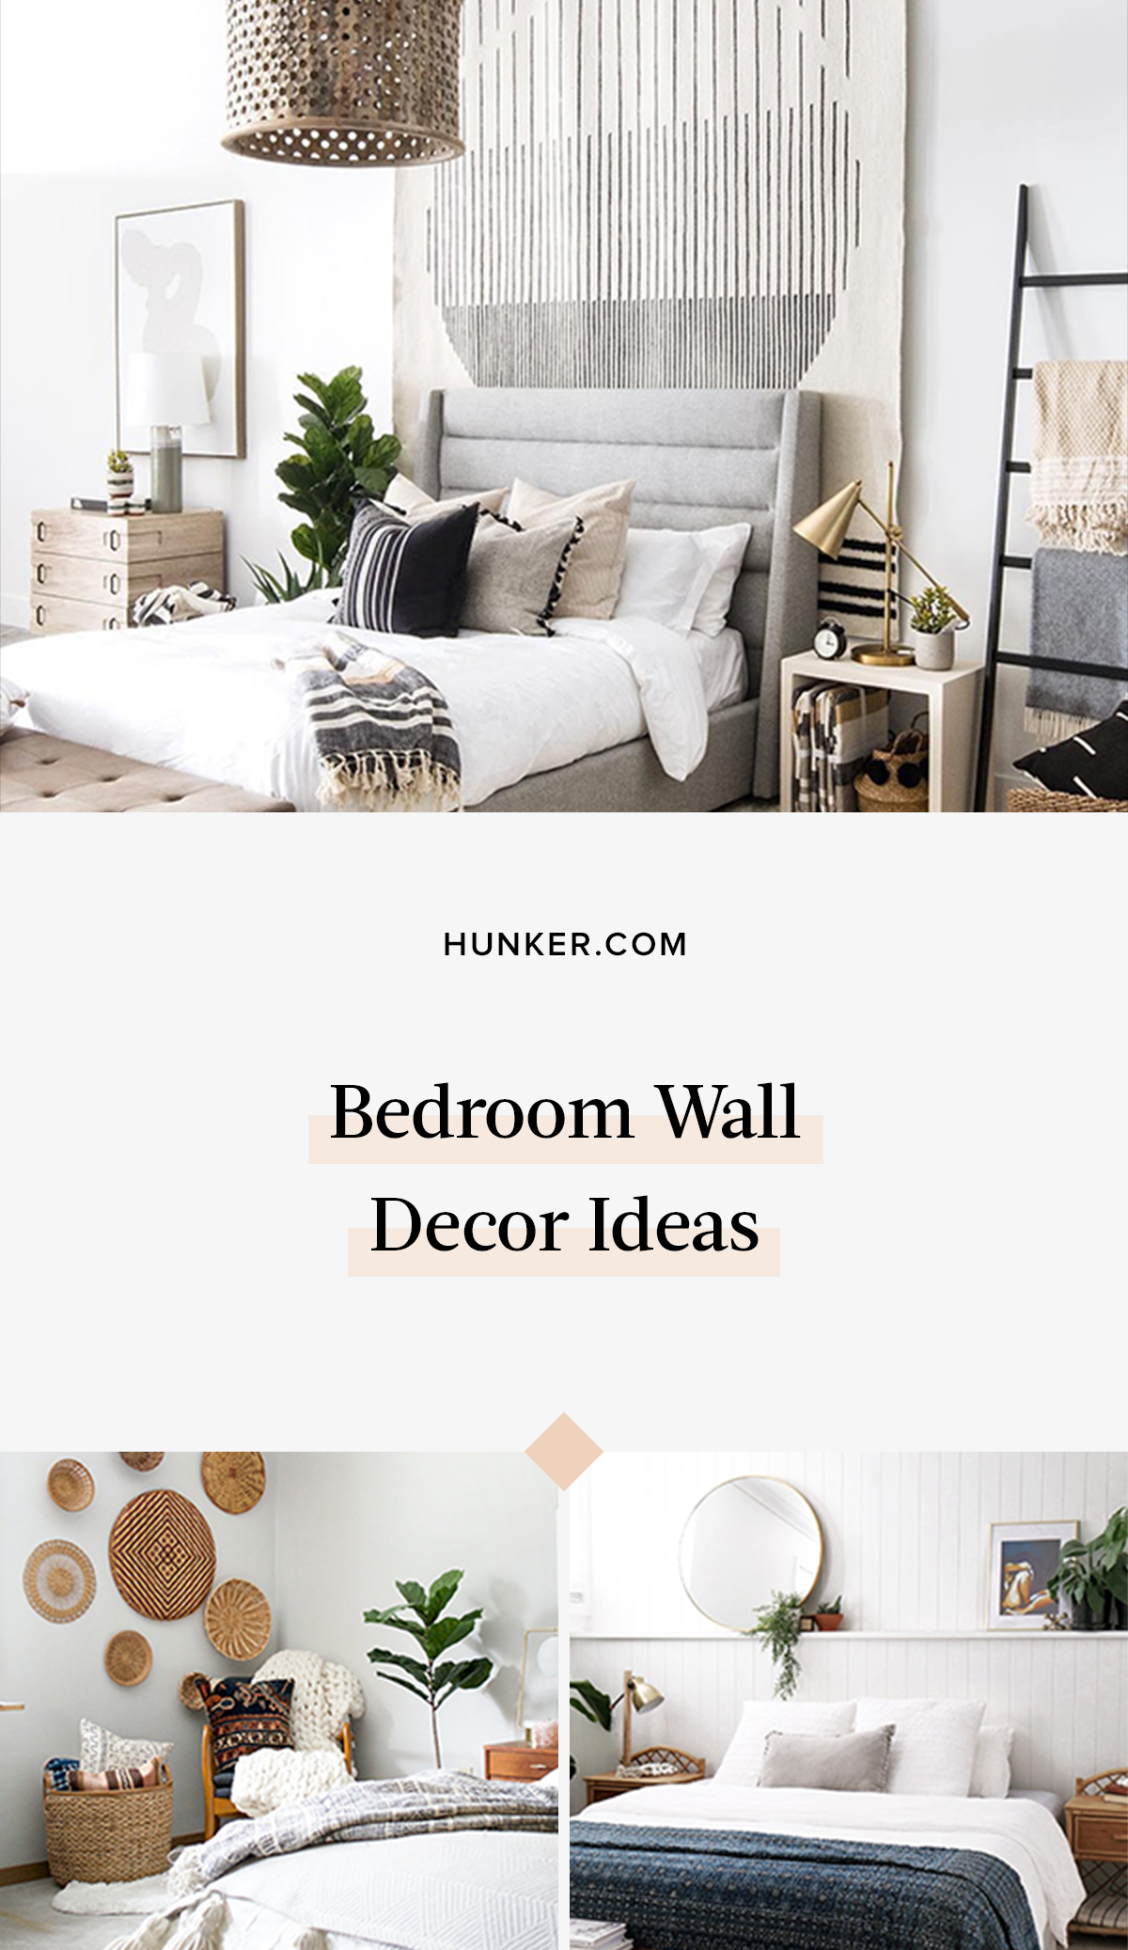 8 Clever Bedroom Wall Decor Ideas To Make The Most Of That Blank Space Hunker Wall Decor Bedroom Bedroom Wall Decor Above Bed Above Bed Decor